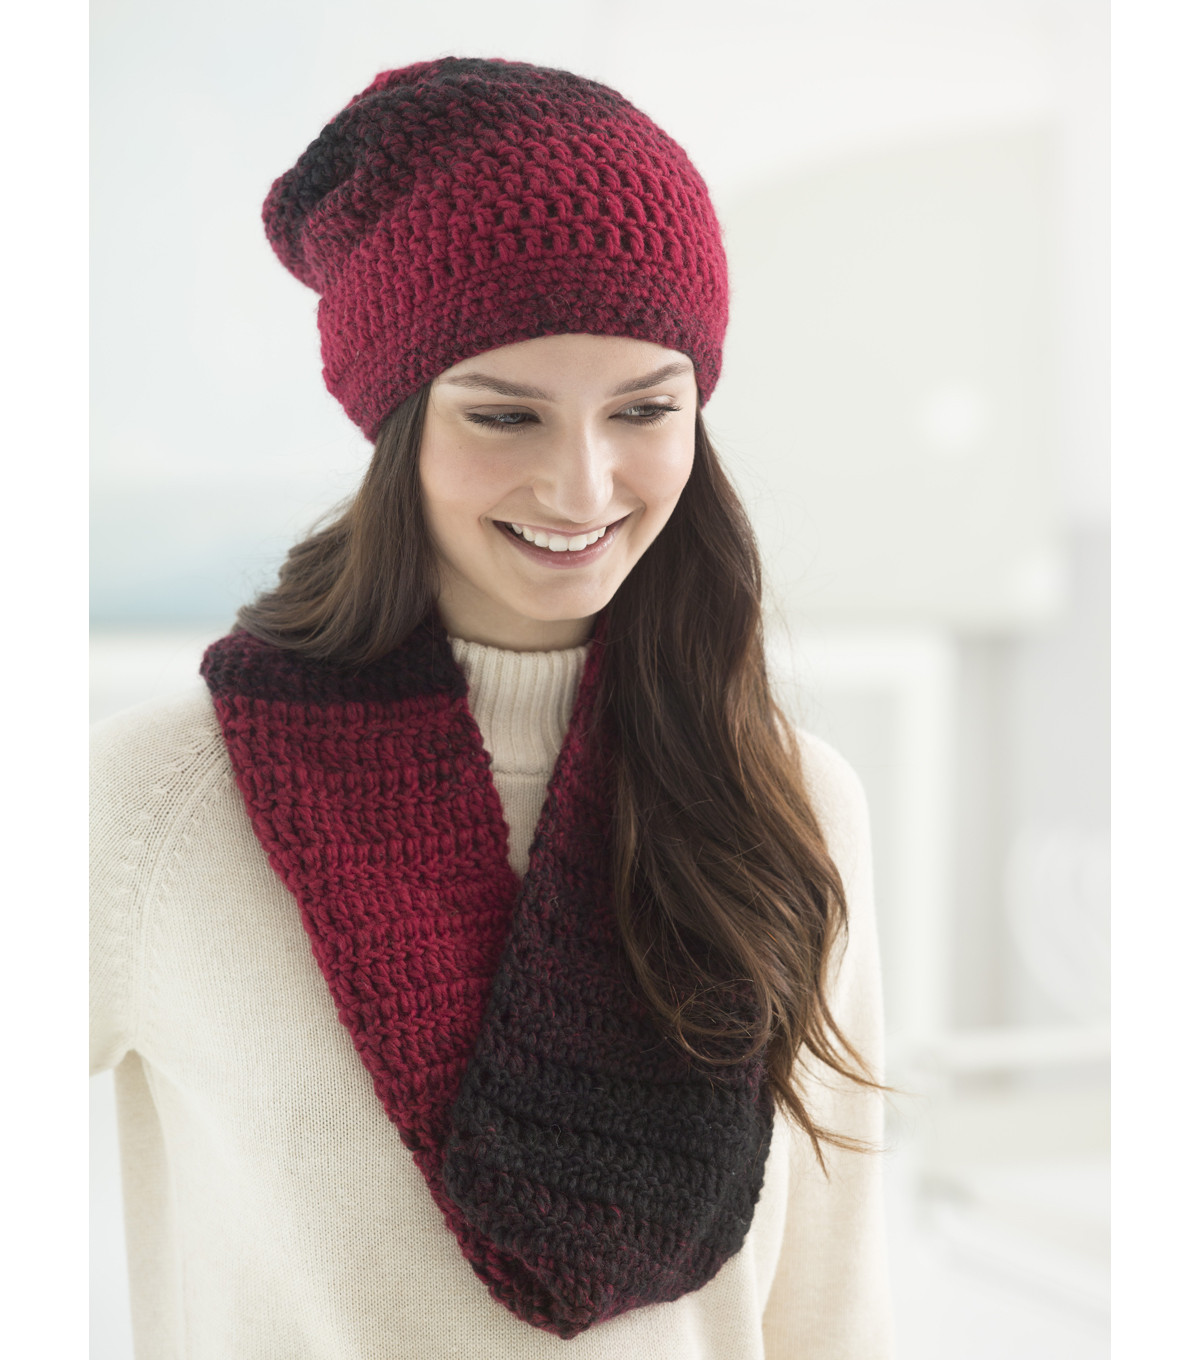 Awesome Crochet Patterns Using Scarfie Yarn Creatys for Lion Yarn Patterns Of Delightful 41 Images Lion Yarn Patterns